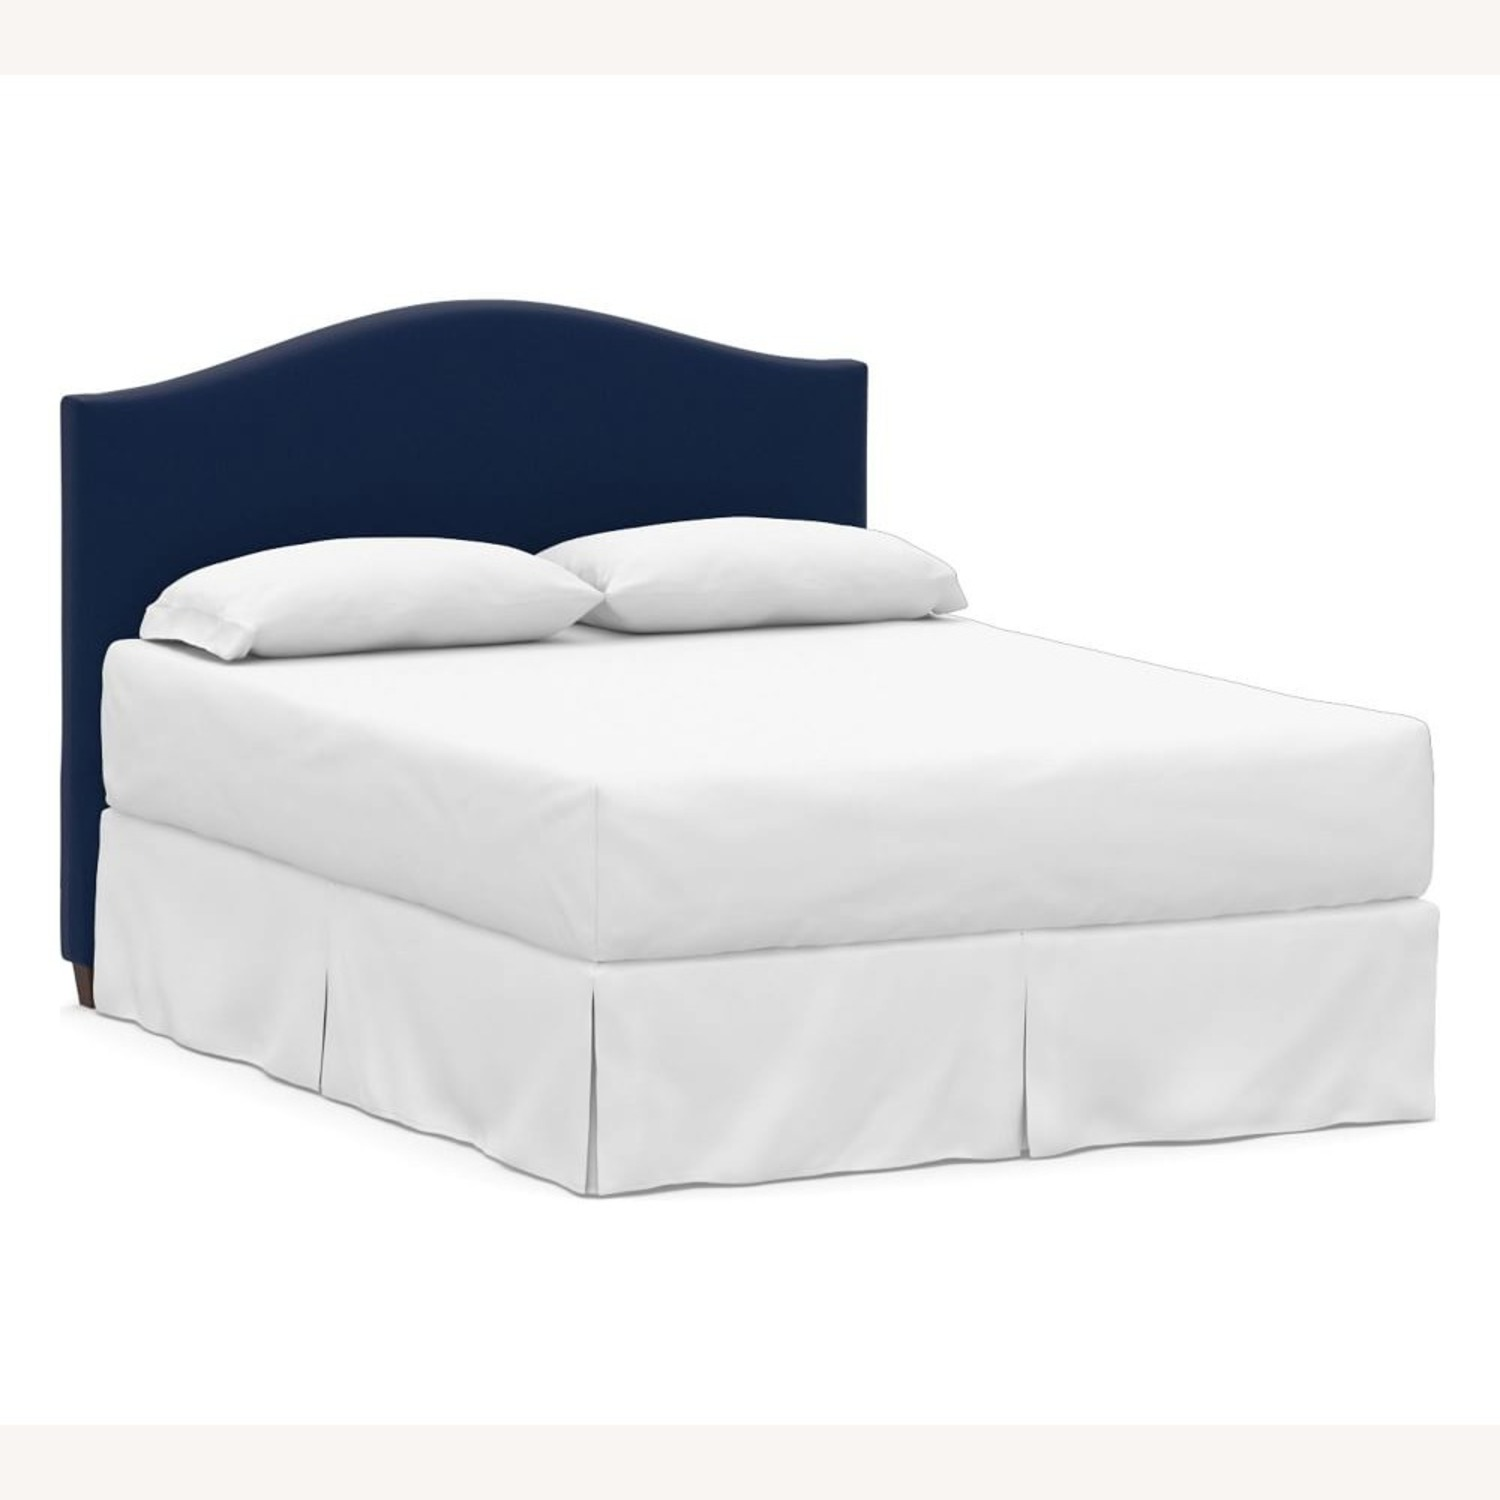 Pottery Barn Raleigh Curved Low Headboard - image-1